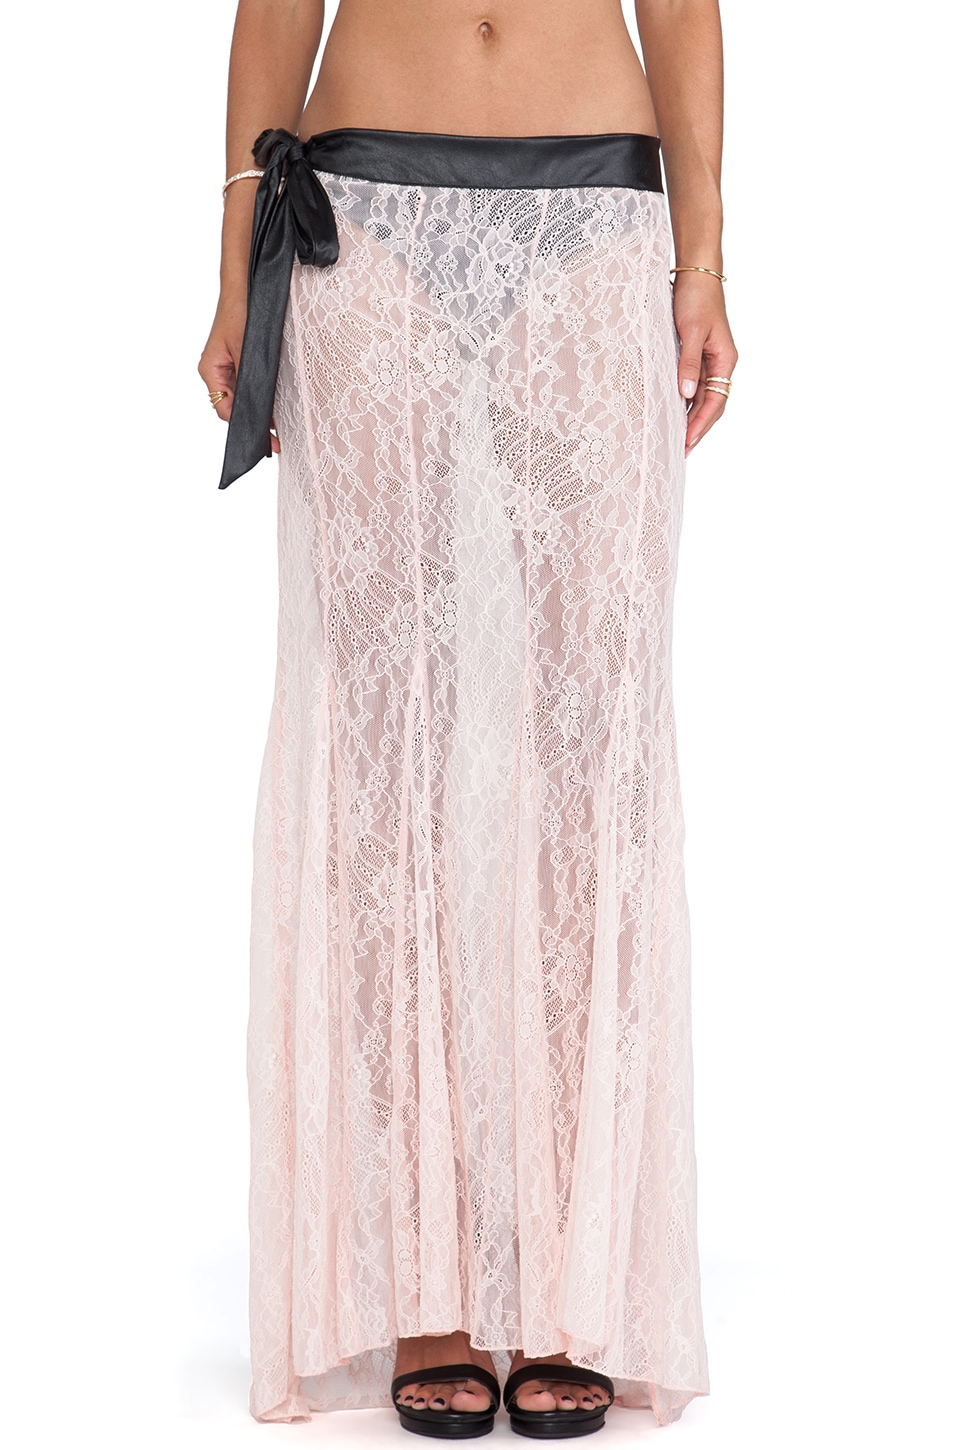 Beach Bunny Bedroom Eyes Maxi Skirt in Blush